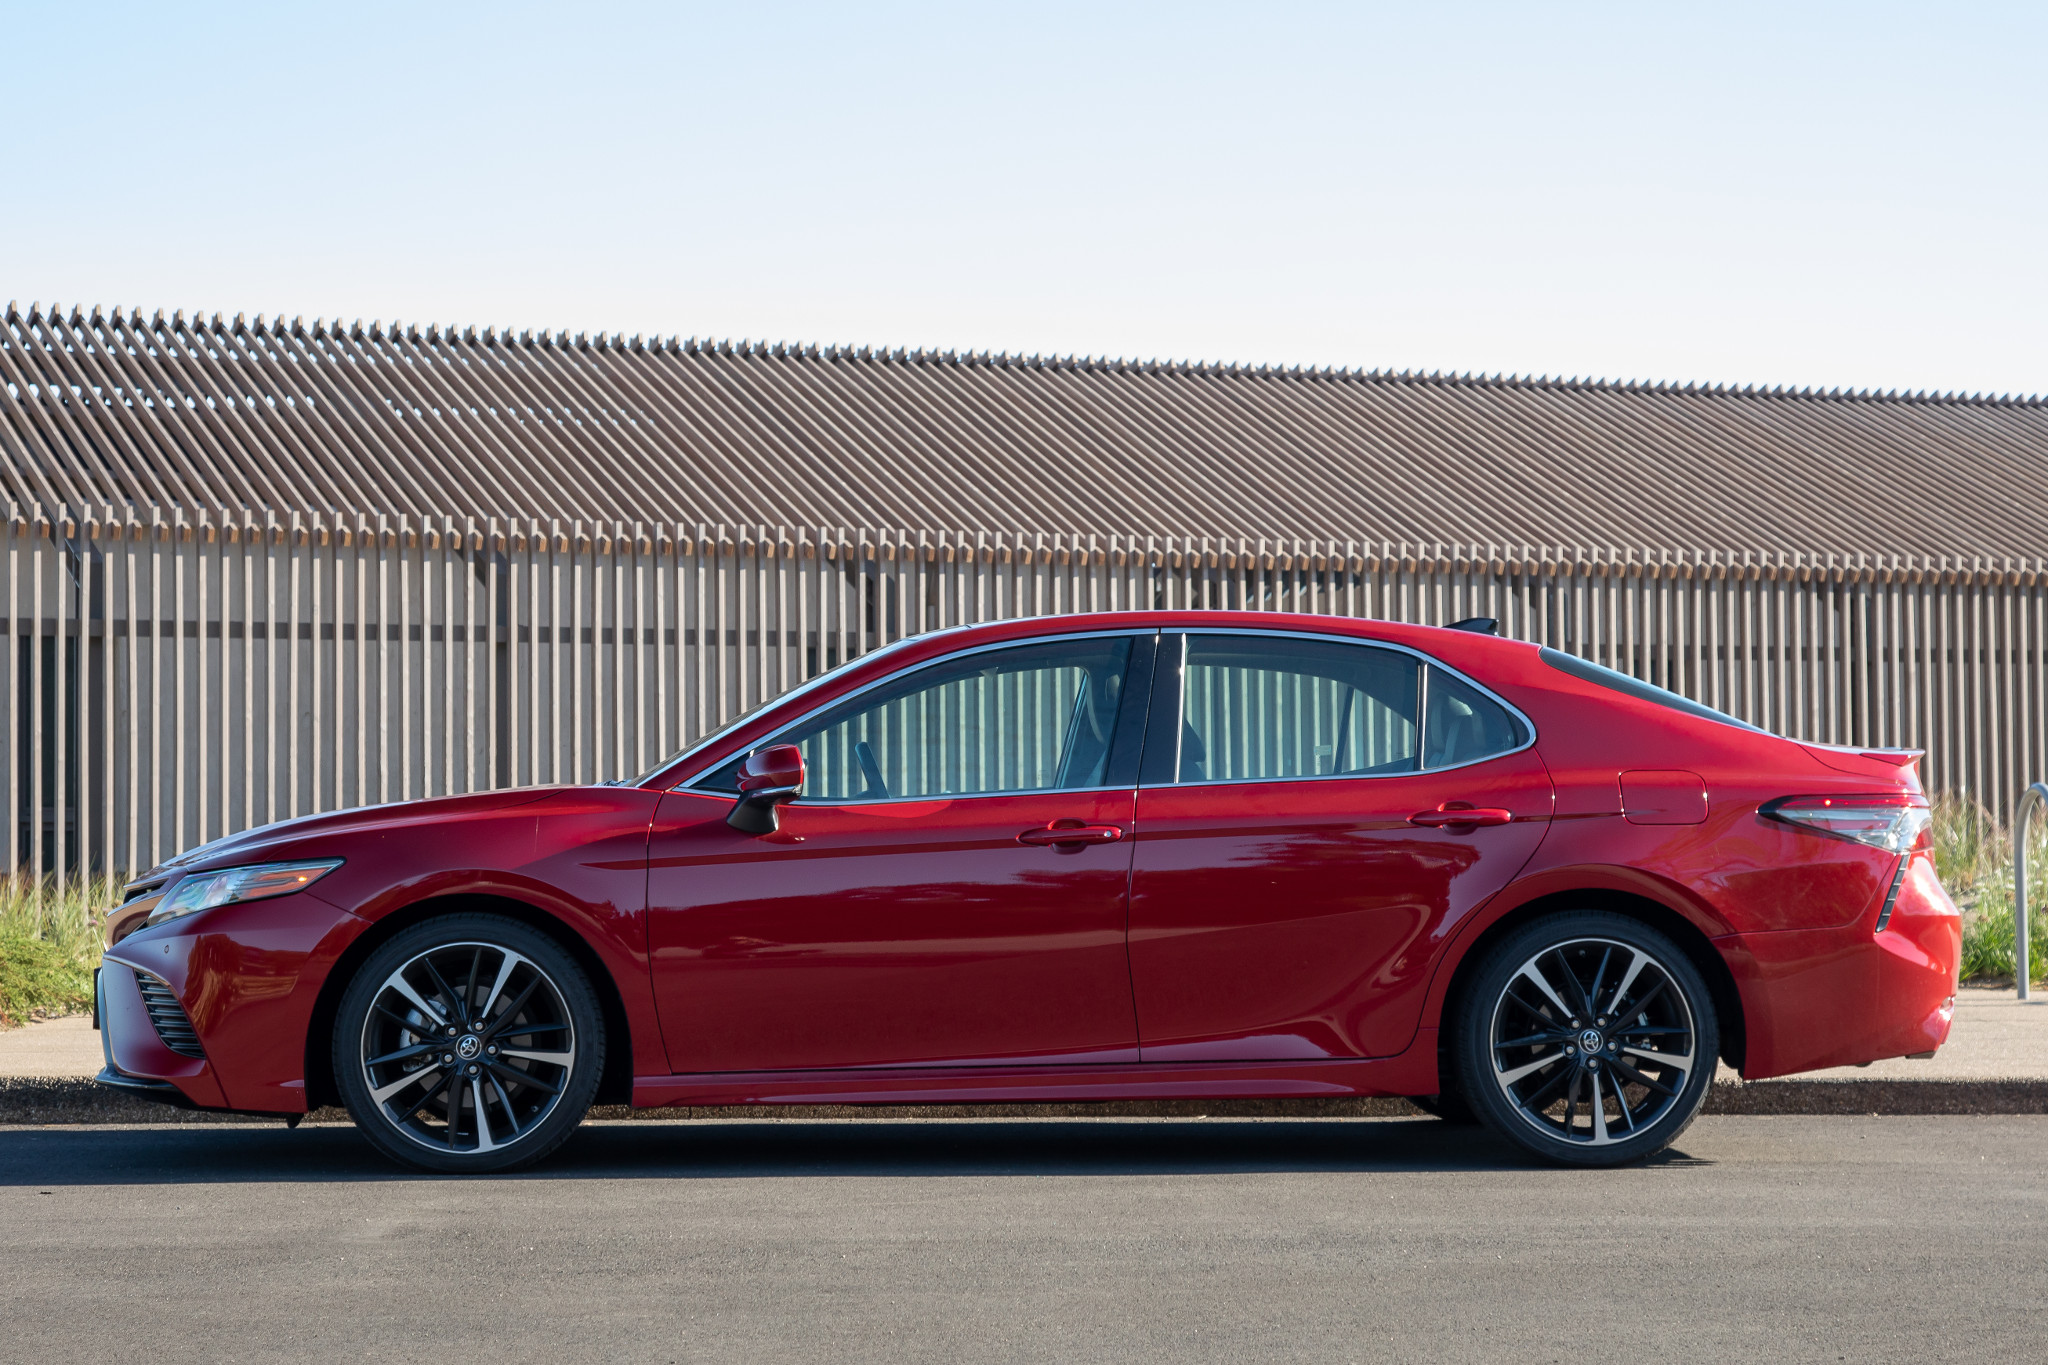 2019 Toyota Camry Review: Short of Great, But Still Good ...